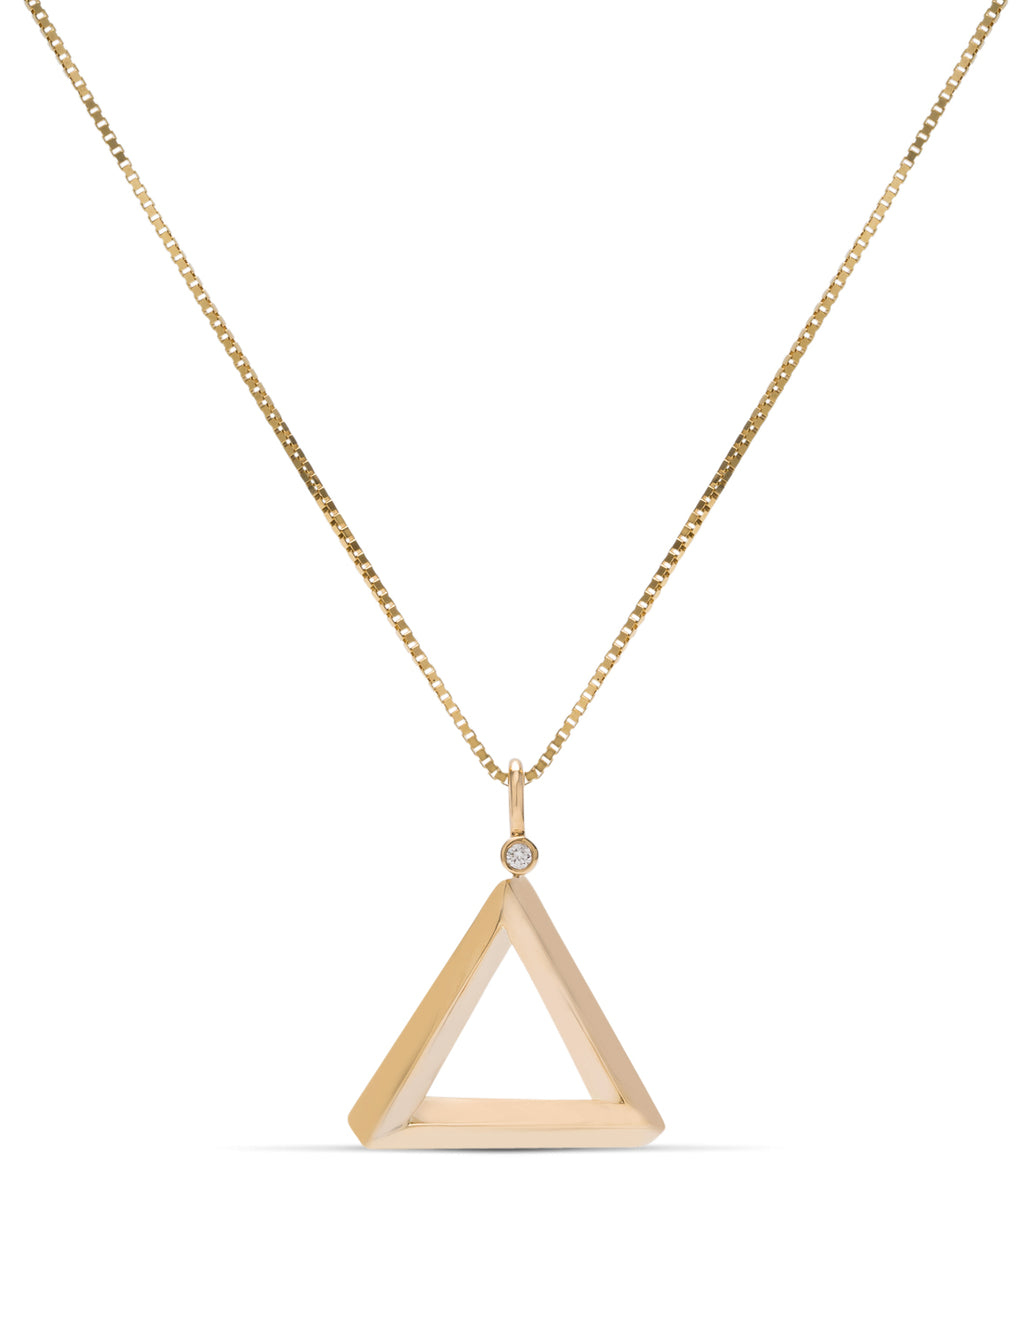 Yellow Gold Penrose Triangle Pendant - Charles Koll Jewellers